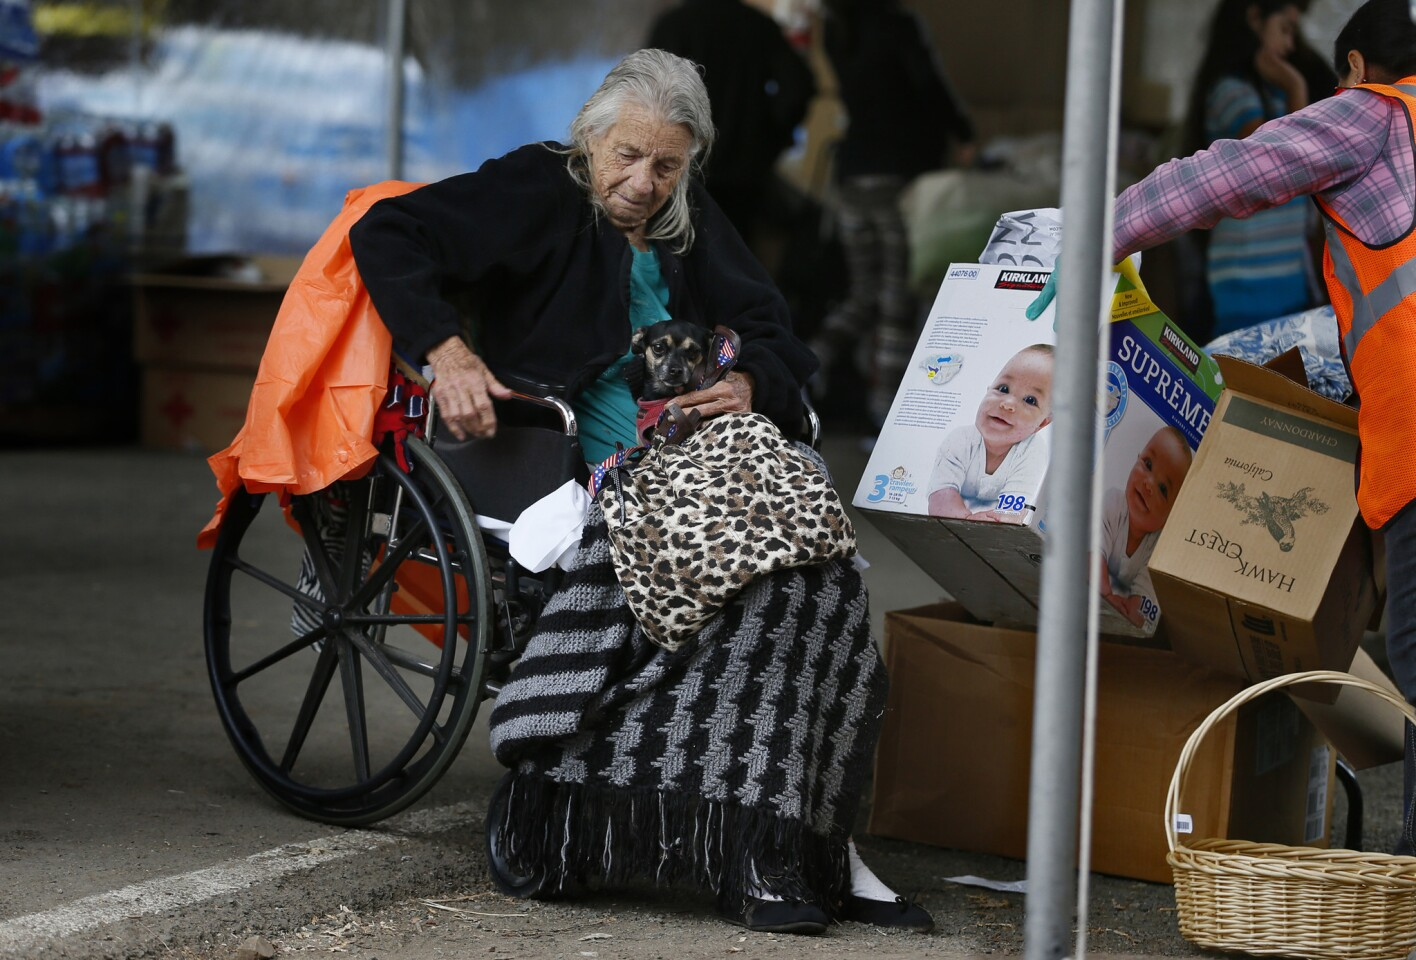 At the Napa County Fairgrounds evacuation center, Winnie Pugh, 85, has to borrow a wheelchair because her home, including her power chair and electric scooter, burned in the Valley fire.